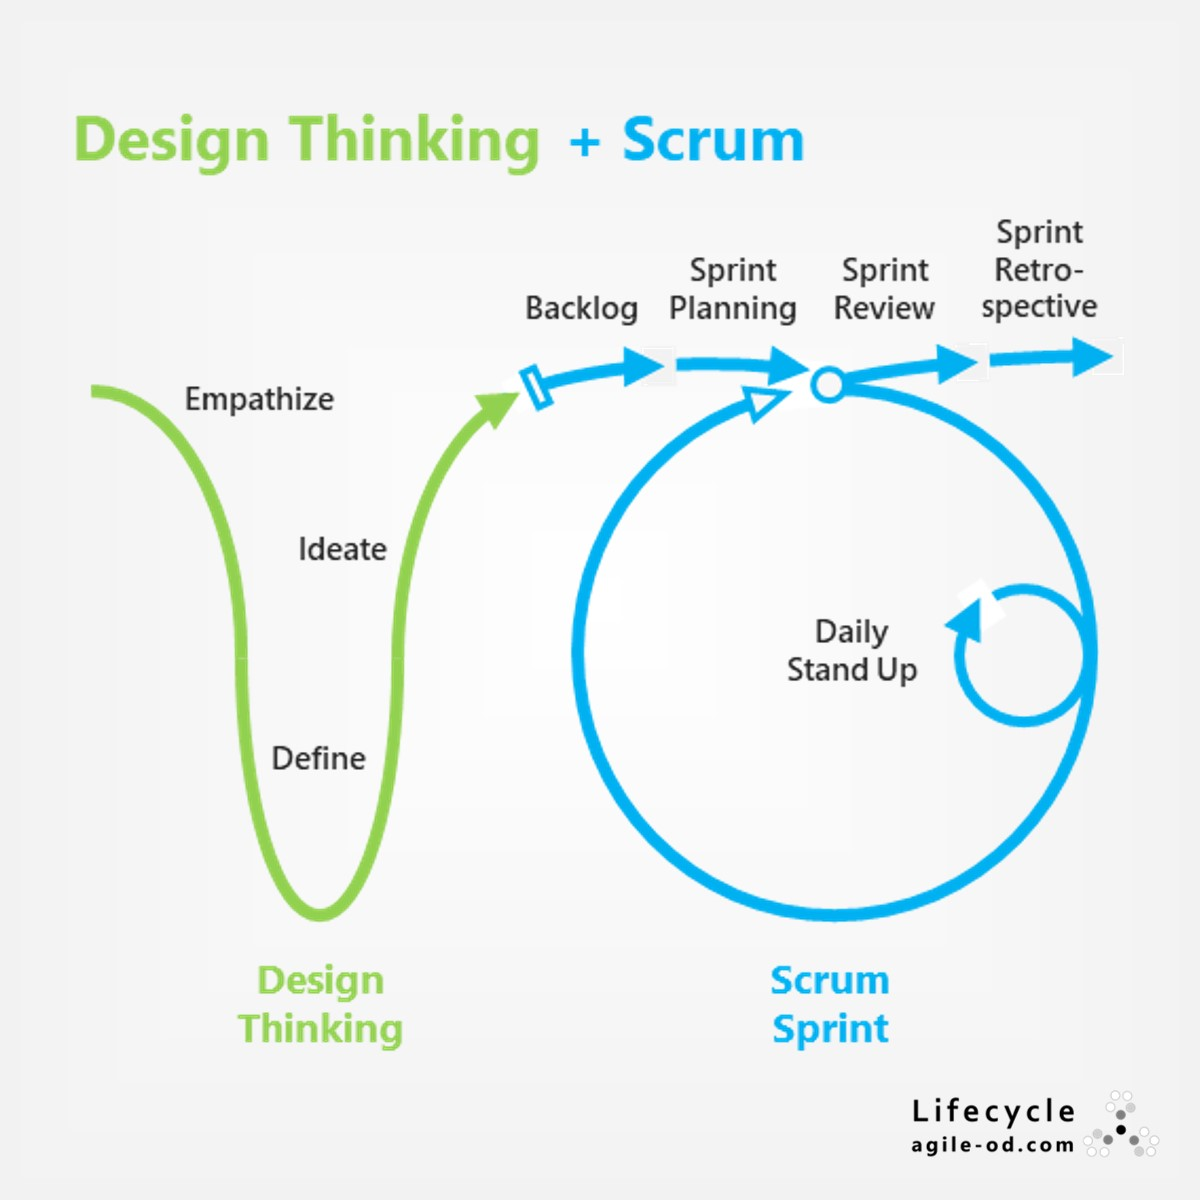 Try Design Thinking + Scrum | agile-od.com | Lifecycle